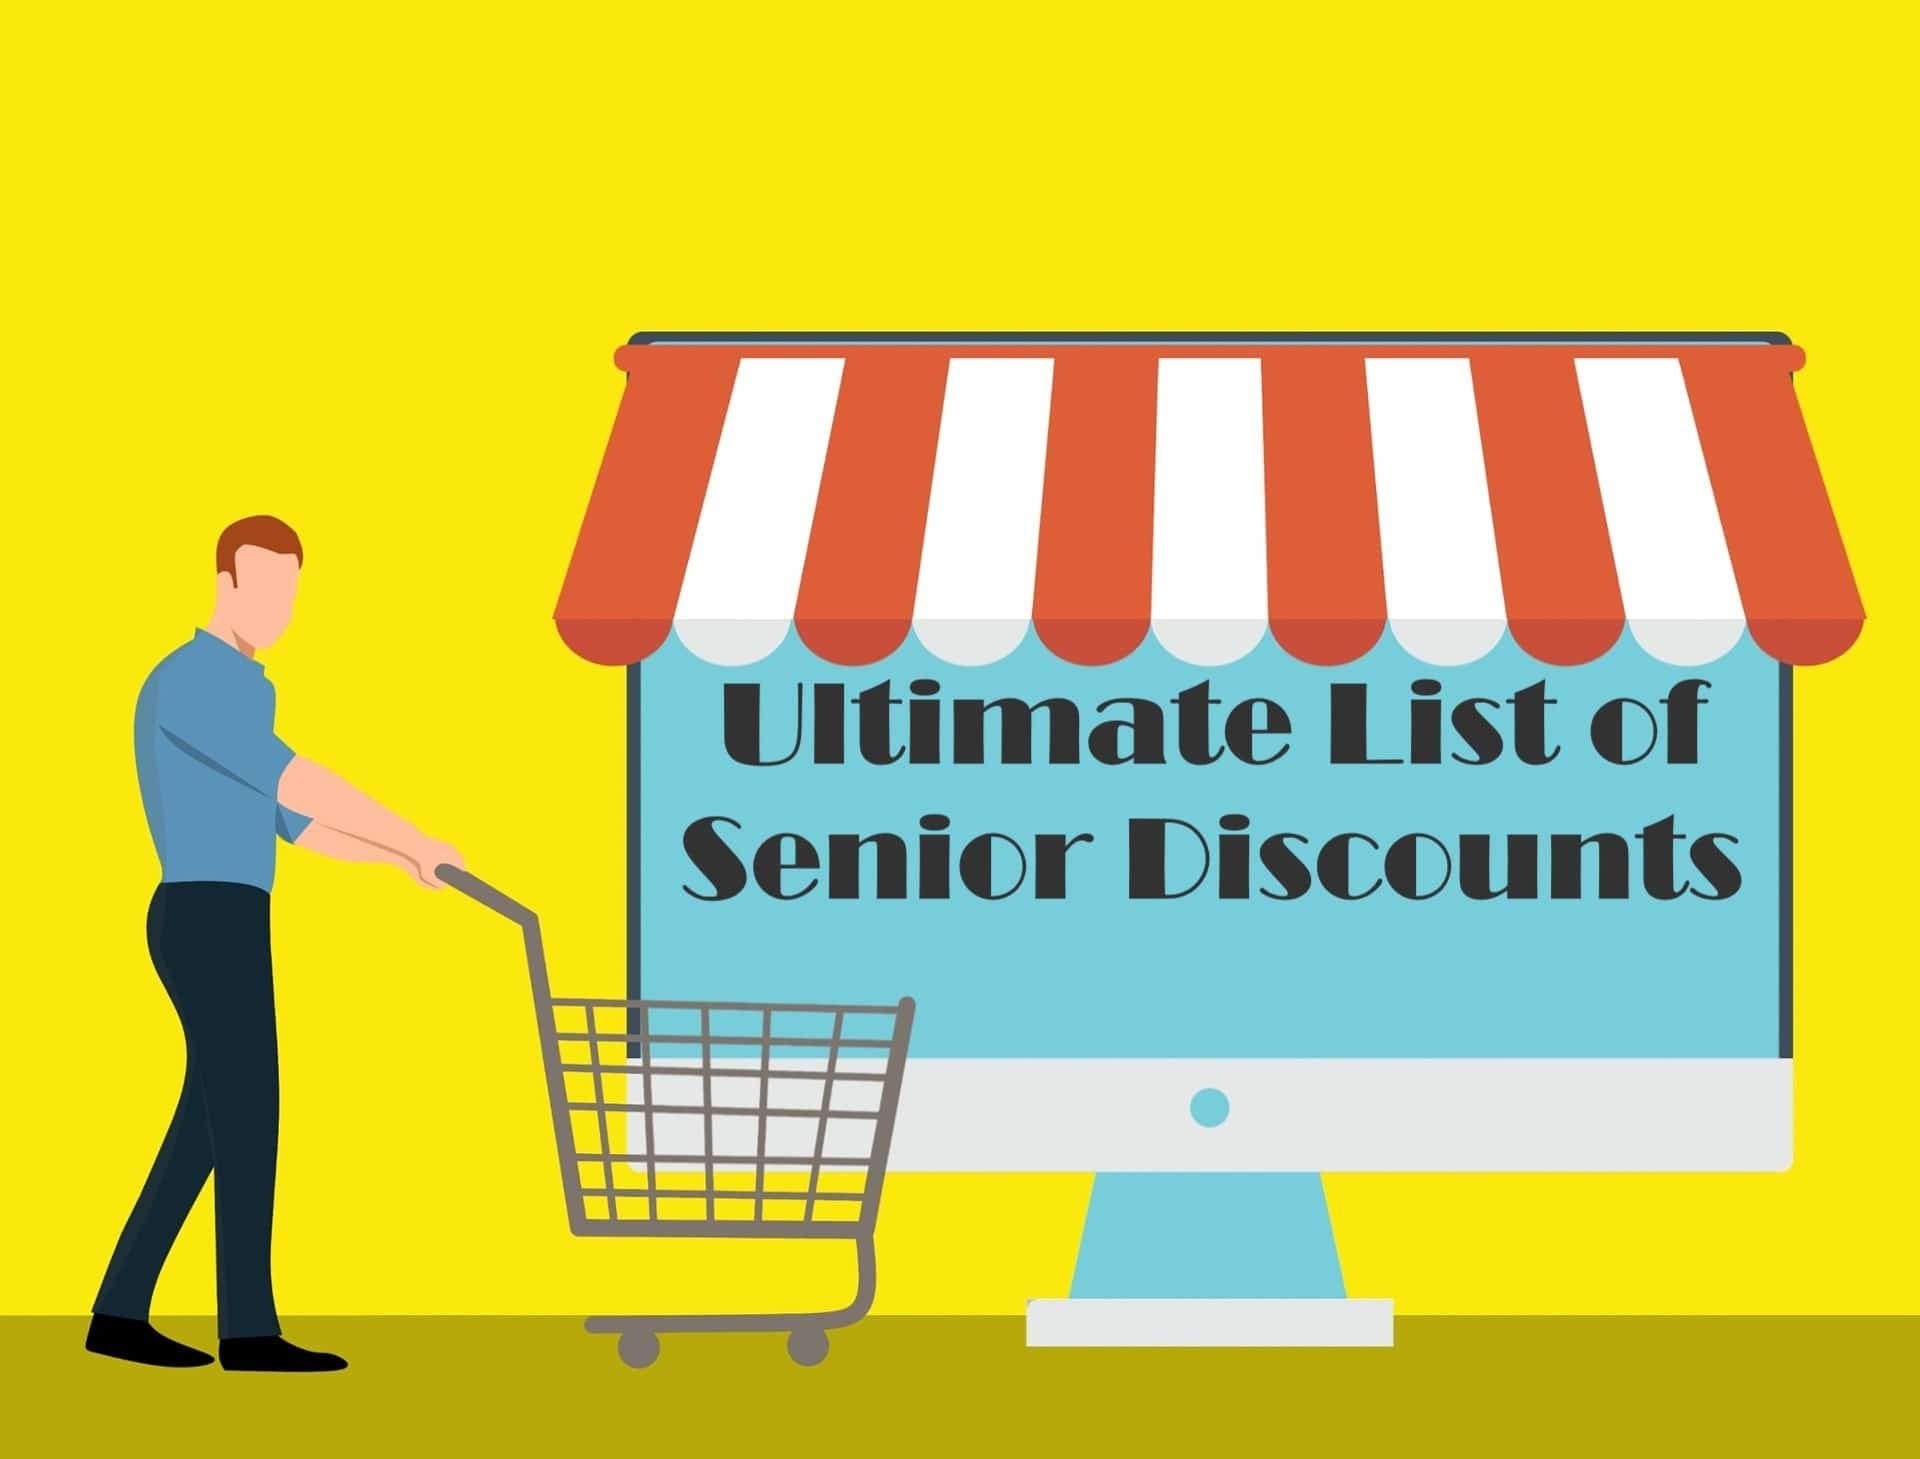 c01d1ac7aa5 Ultimate List of Senior Discounts - 2019 - MedAlertHelp.org